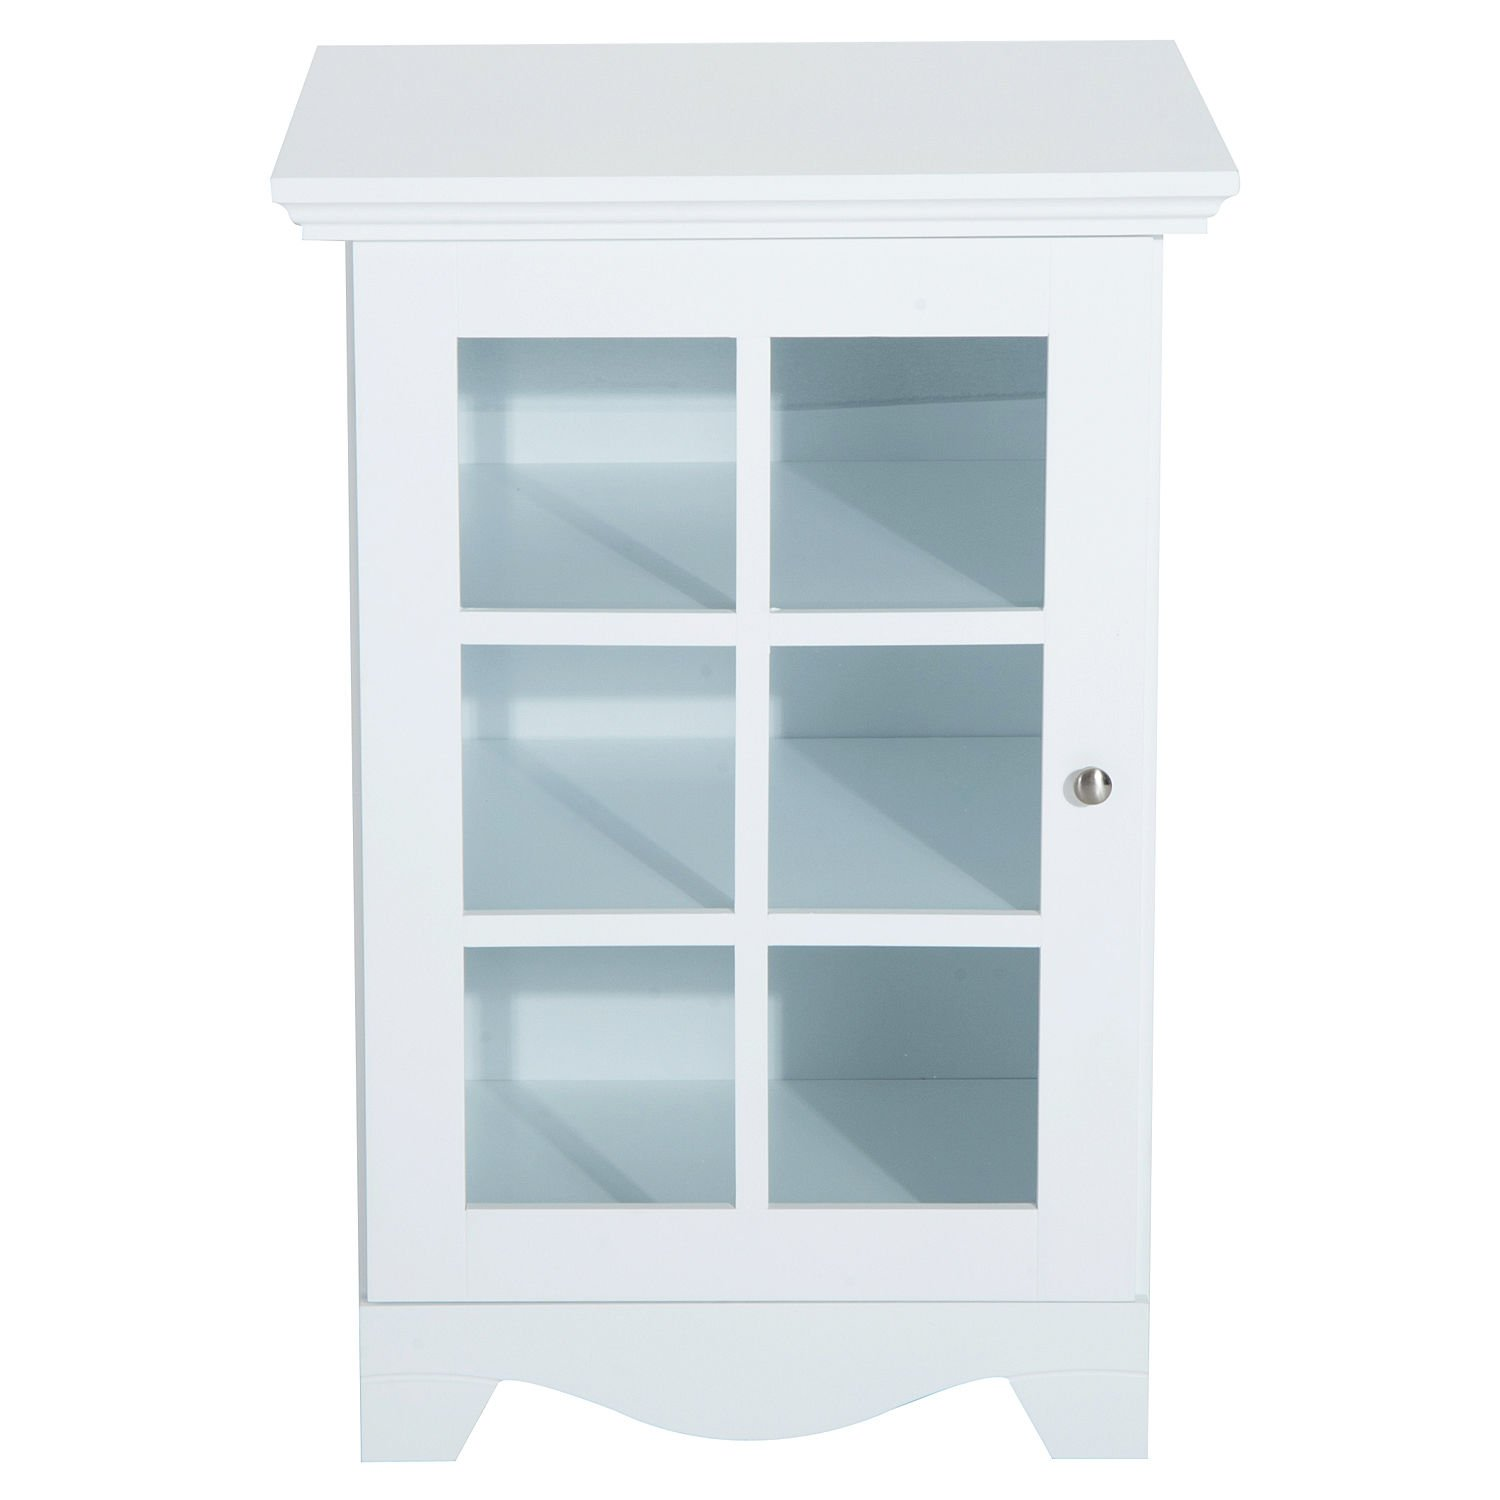 New White Wood Cabinet Storage Hutch Kitchen Bathroom Bedroom Single Glassed Door Shelves by totoshop (Image #8)